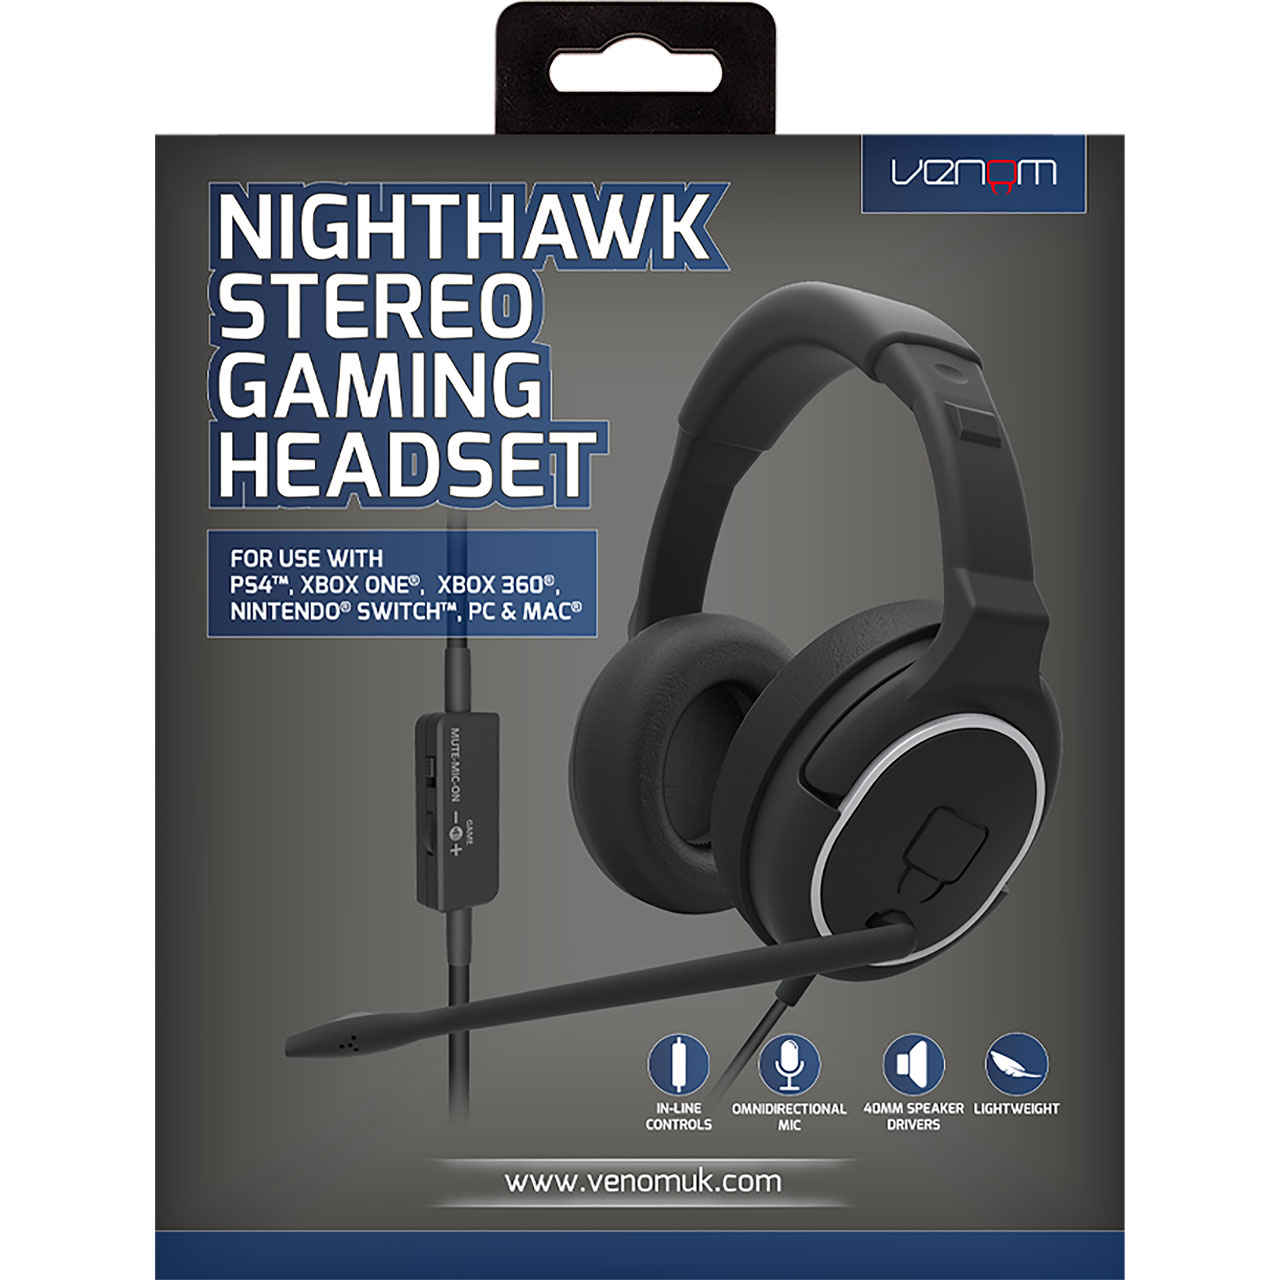 Venom VS2855 Nighthawk Stereo Gaming Headset (PS4,XBOX ONE,PC,NINTENDO SWITCH)